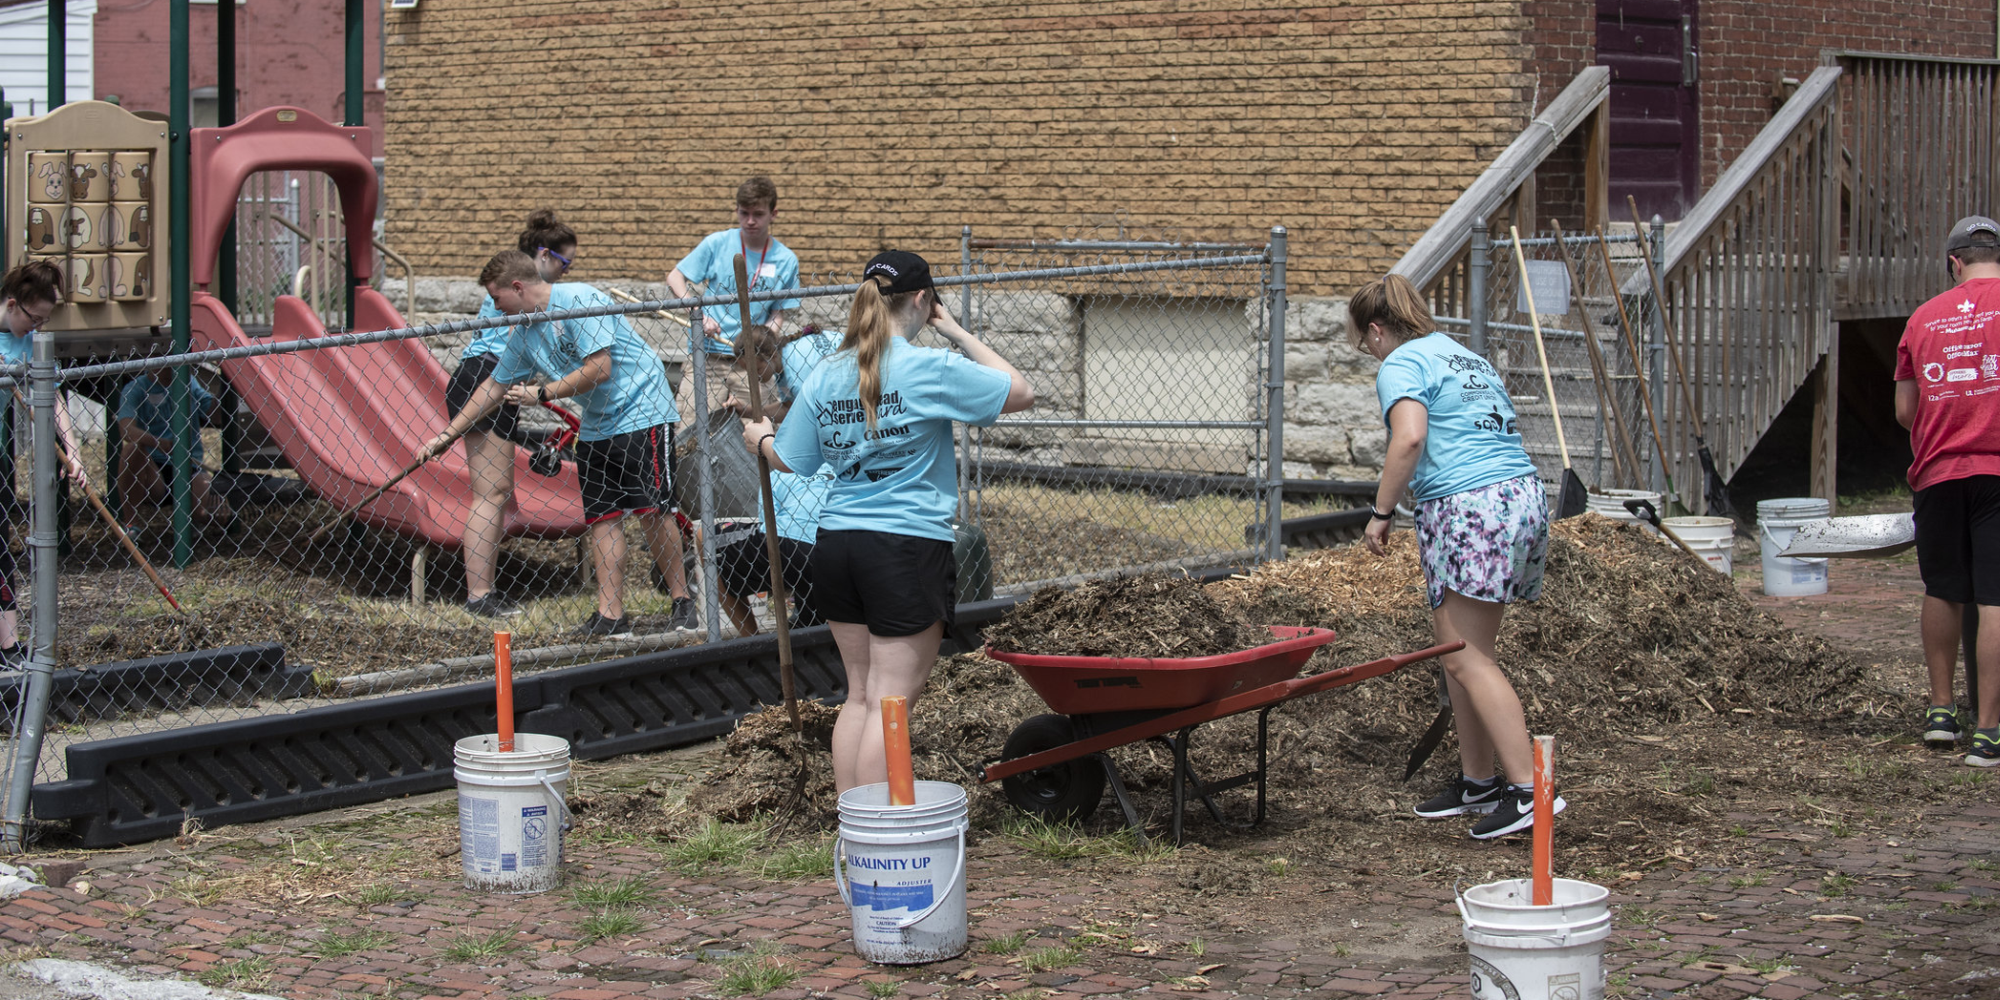 Spreading mulch onto a play area during a S.O.U.L event